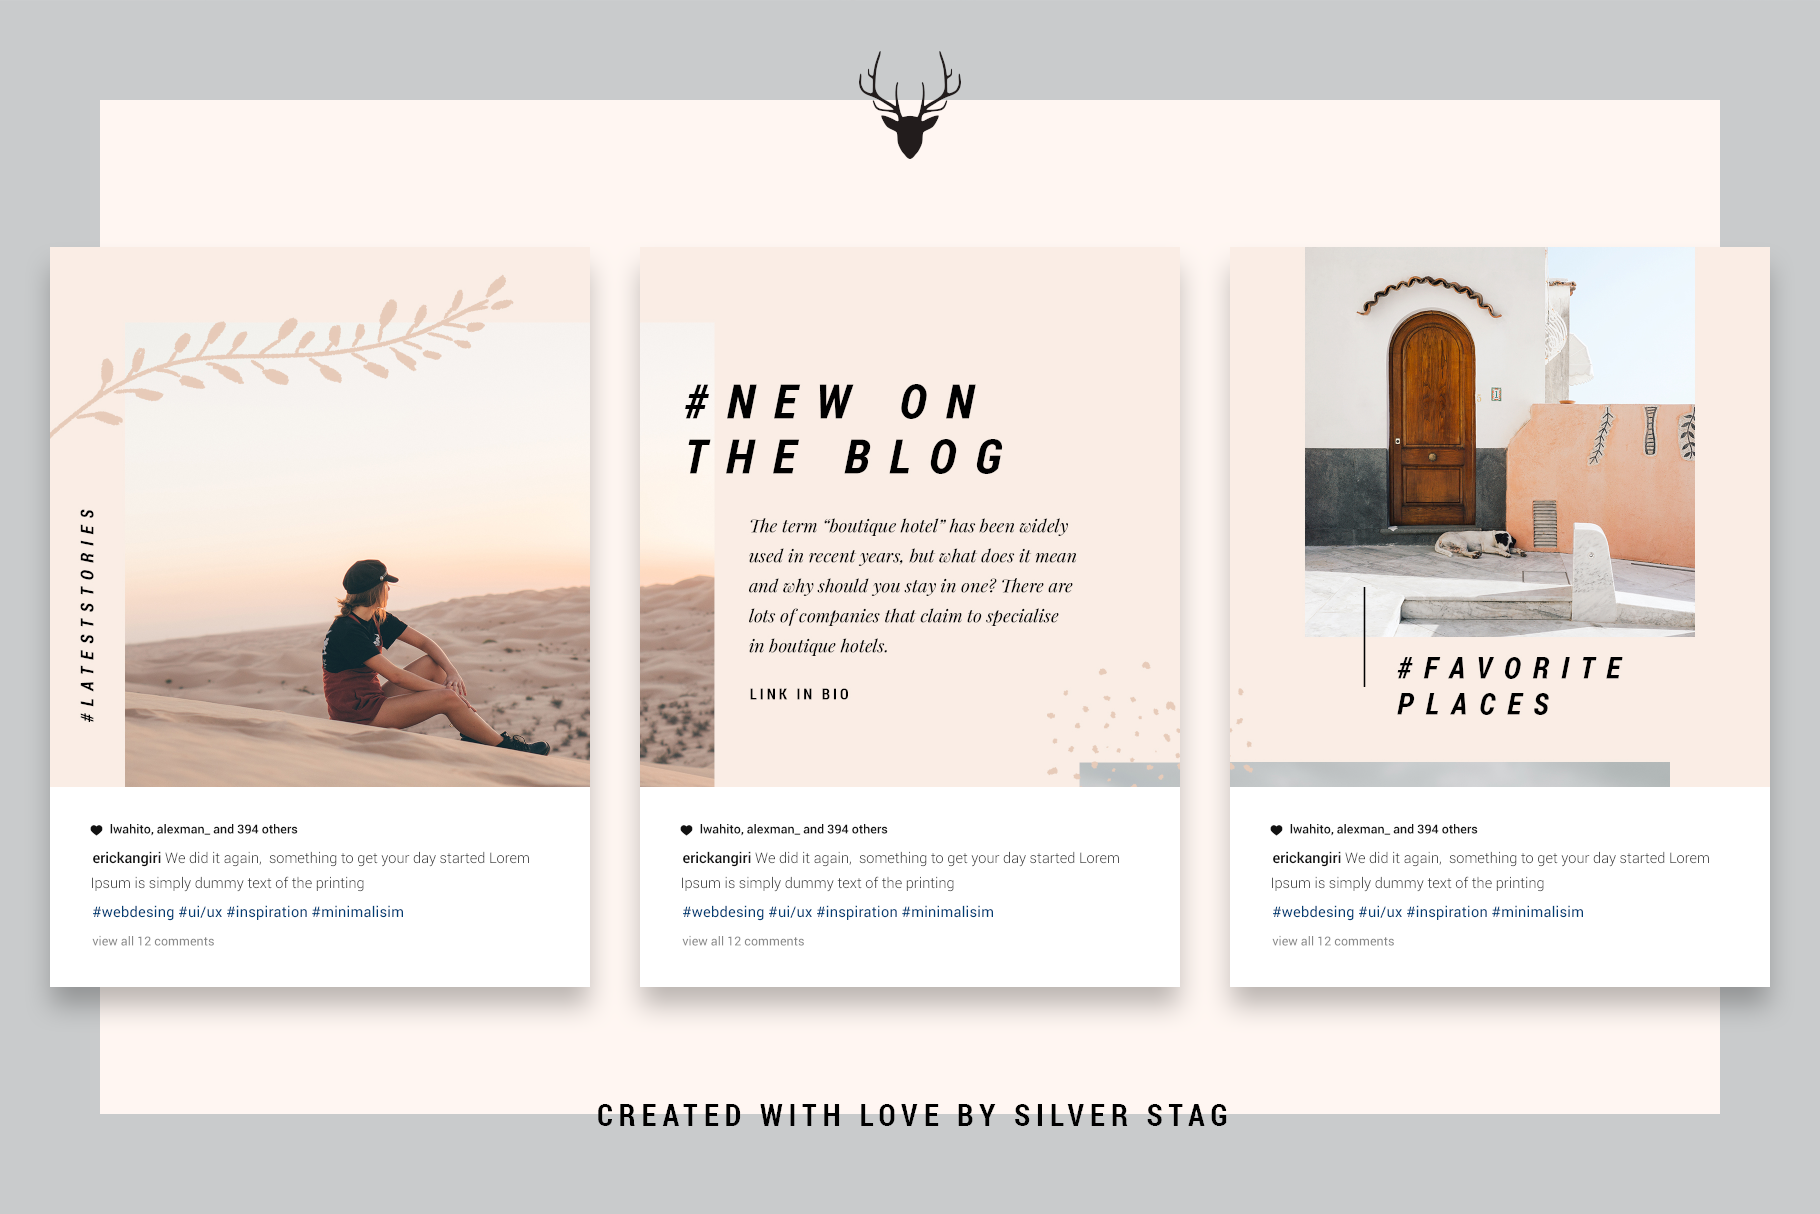 InstaGrid 5.0 - Creative & Modern Instagram Puzzle Template example image 3